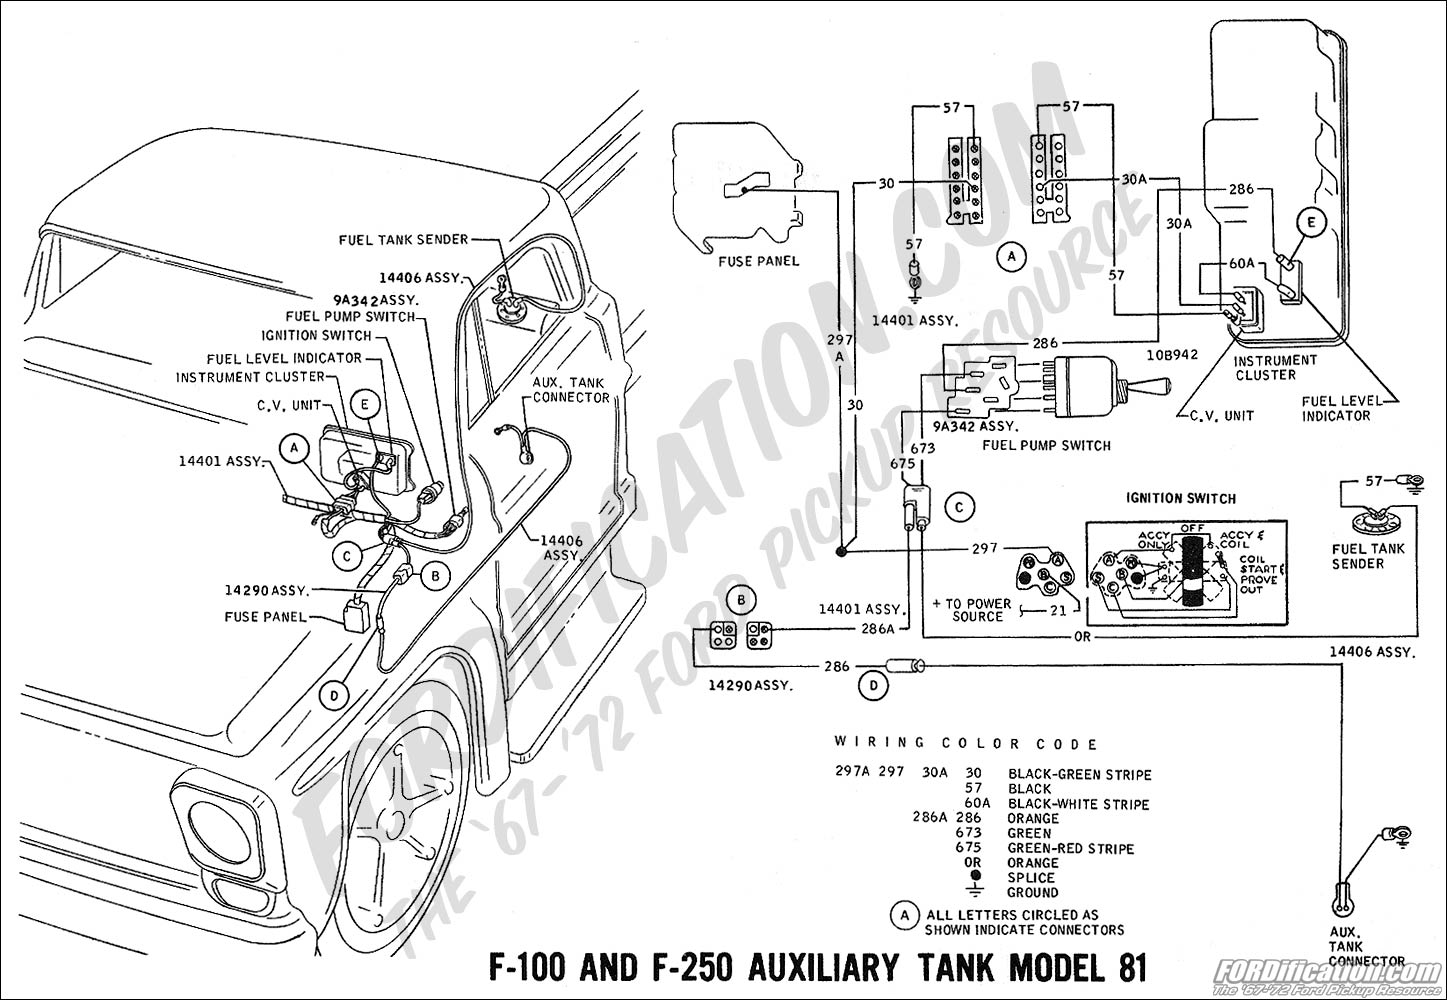 Alternator Wiring Diagram 1982 E350 460 1969 Ford F 350 Wire Coil Opinions About Truck Technical Drawings And Schematics Section H Rh Fordification Com Galaxy